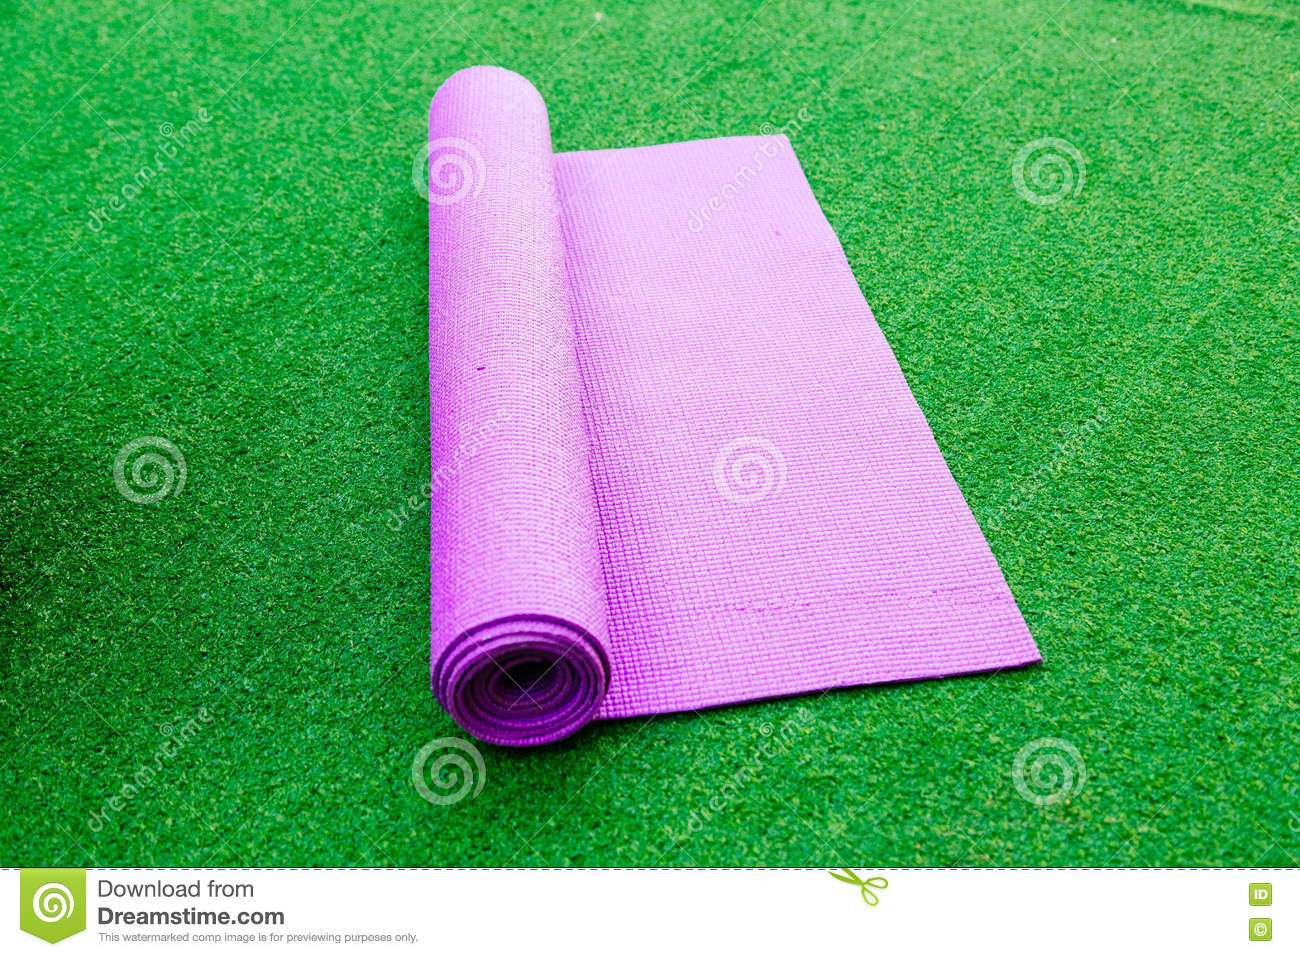 d58a421991570 Pink Yoga Mat On A Green Background Stock Image - Image of physical ...